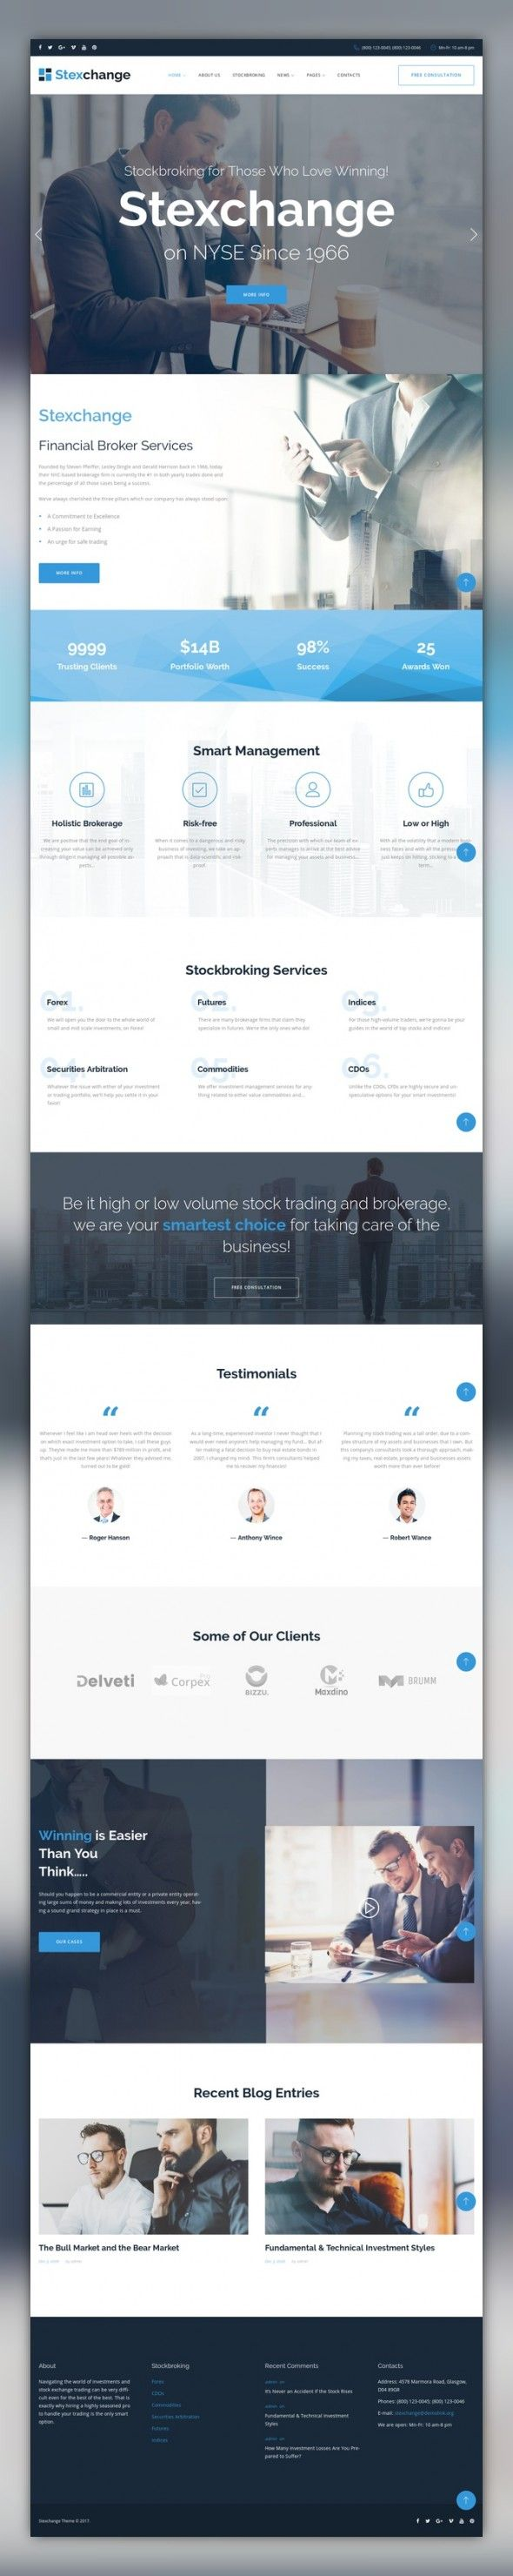 wordpress themes business services finance stexchange is a well documented theme with elegant design clean code great documentation - Great Website Design Ideas